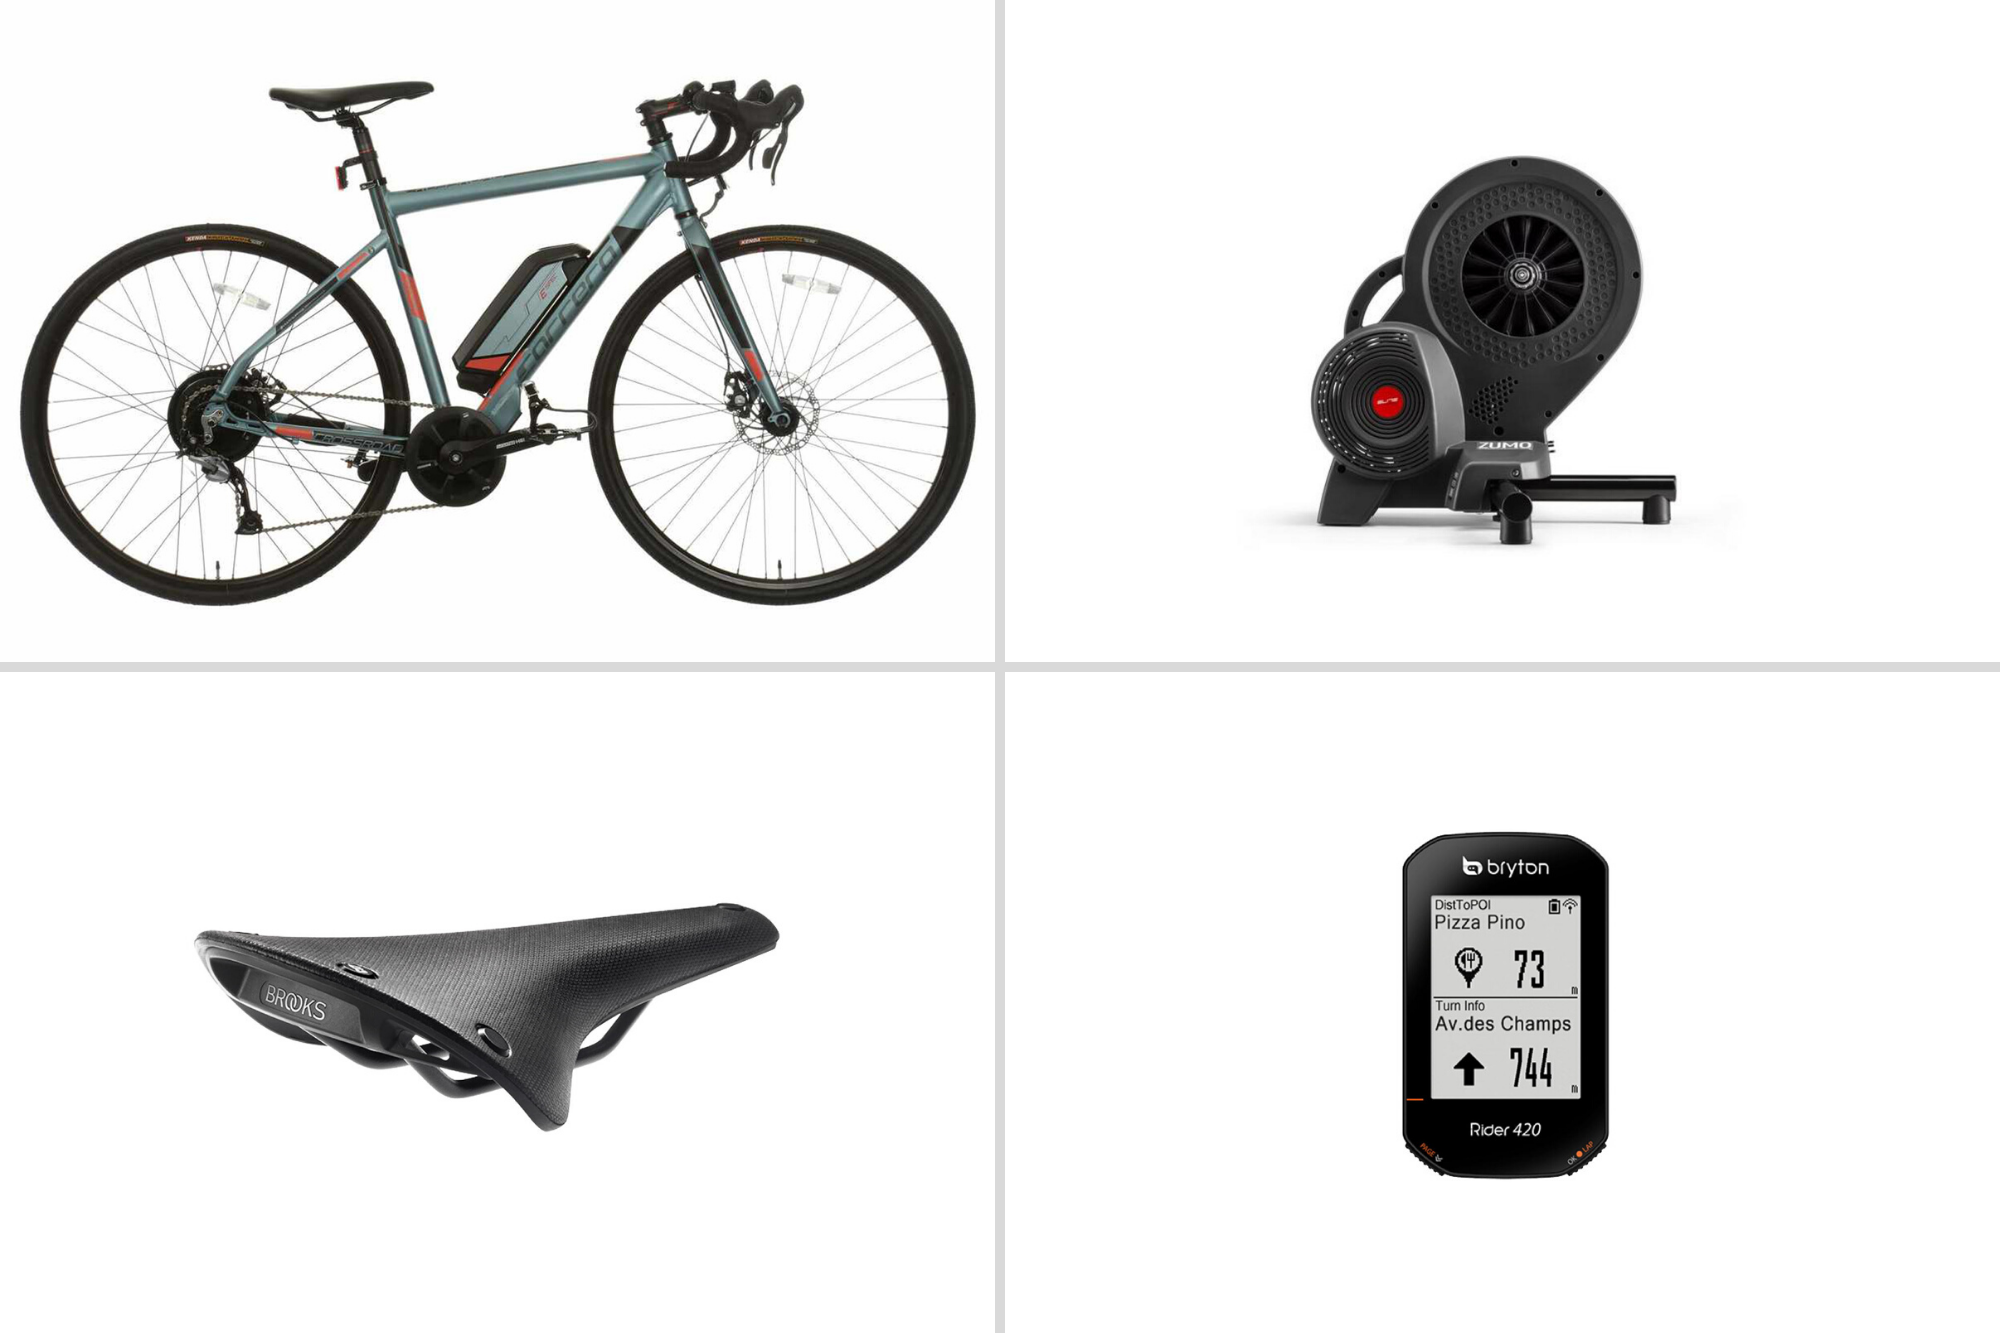 January's tech of the month: Elite Zumo turbo, Bryton cycling computer and a sub £1000 e-road bike